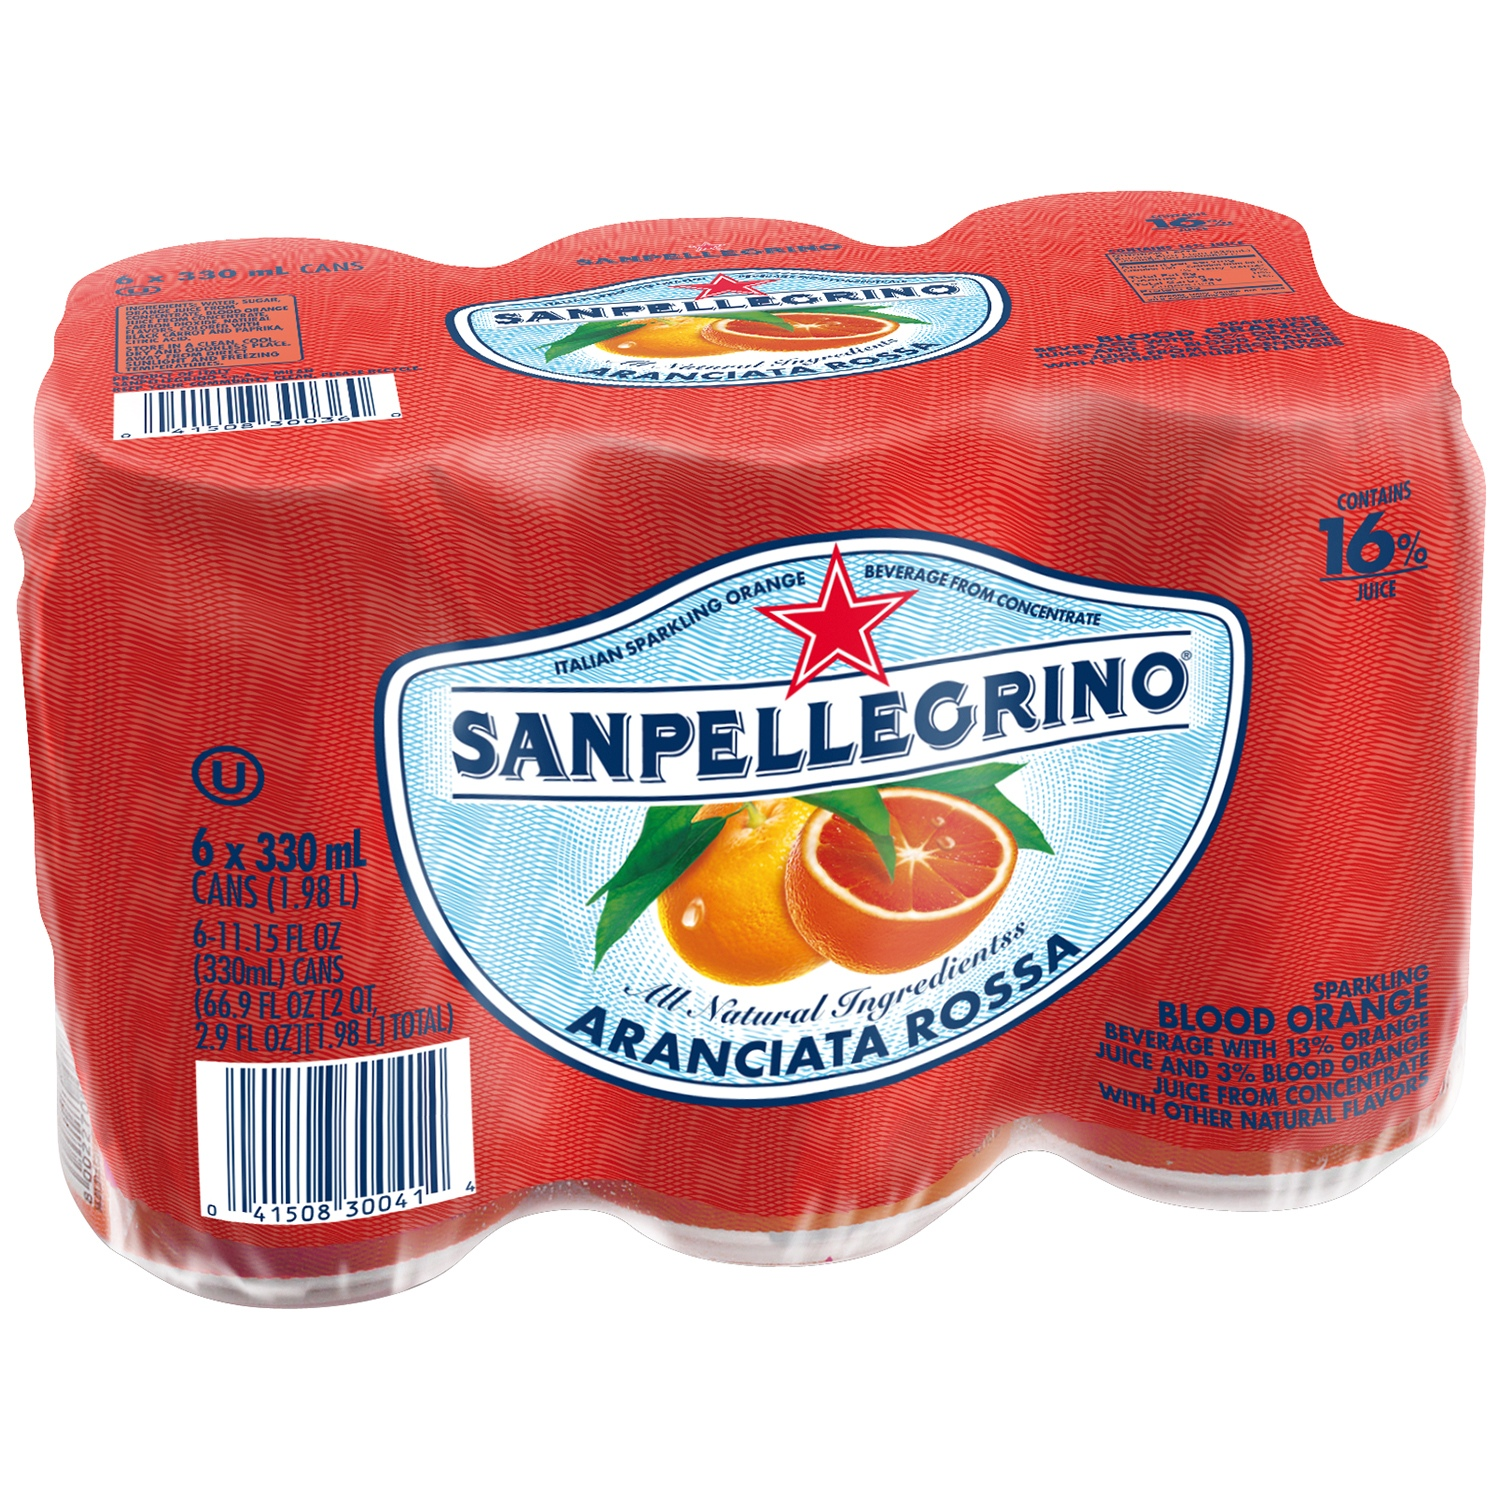 SANPELLEGRINO Blood Orange Sparkling Fruit Beverage 24-11.15 fl. oz. Cans